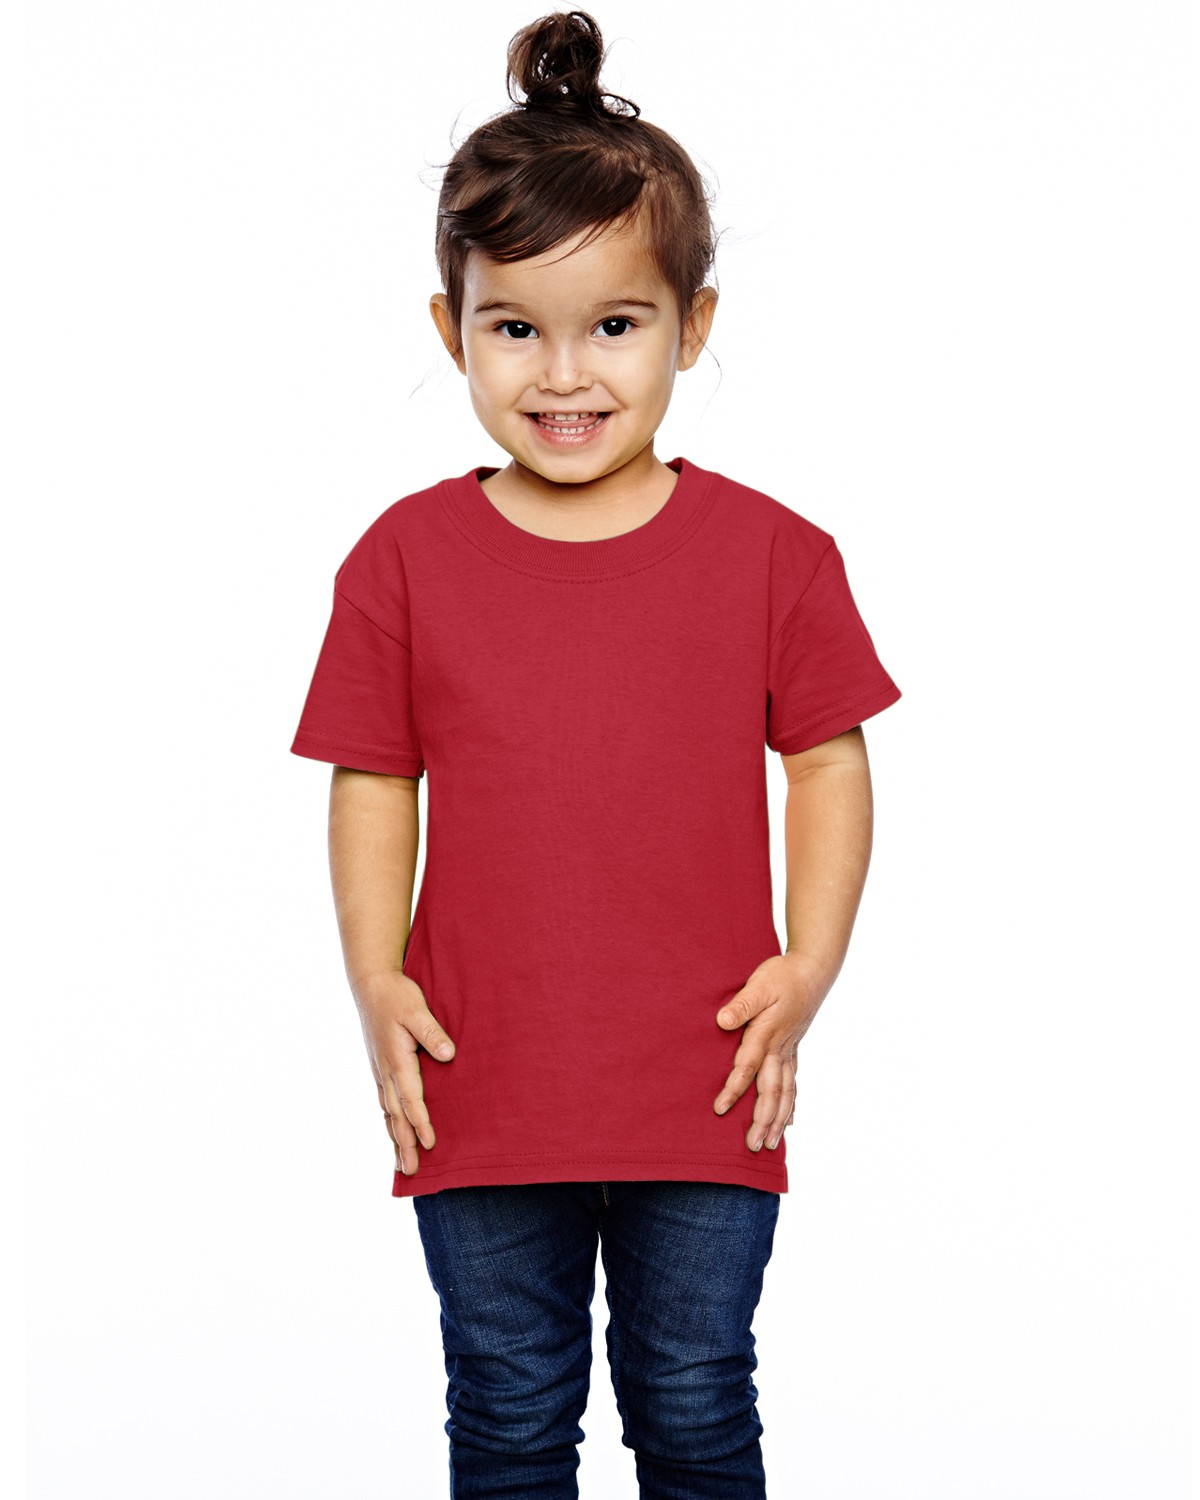 T3930 Fruit of the Loom TRUE RED